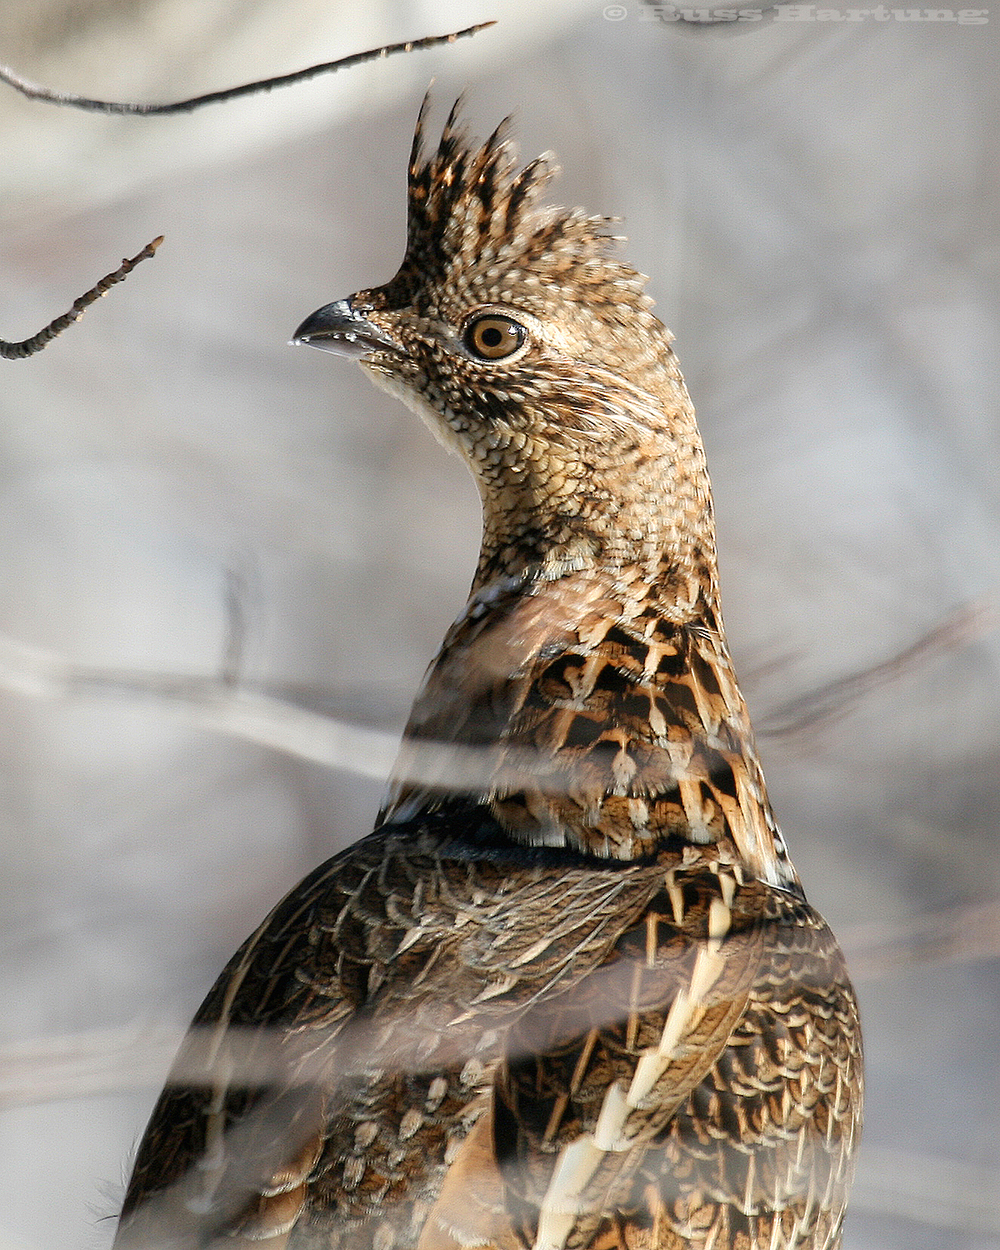 """Ruffed Grouse"" - Jury Selection Lake Placid Center for the Arts 2010 Juried Show"